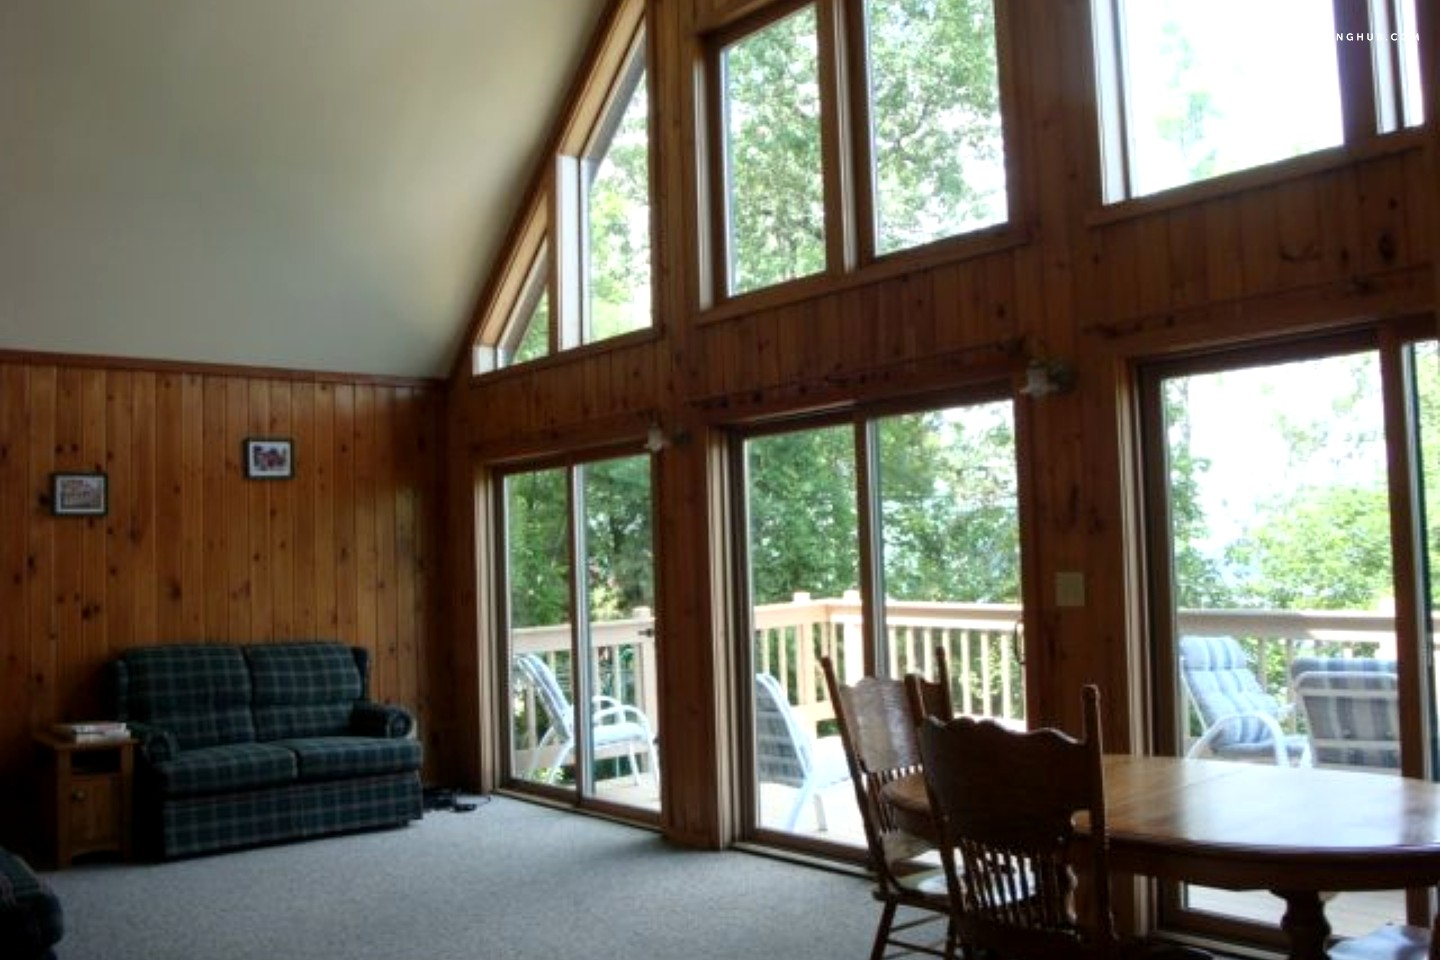 Vacation Rental Near Bangor Maine